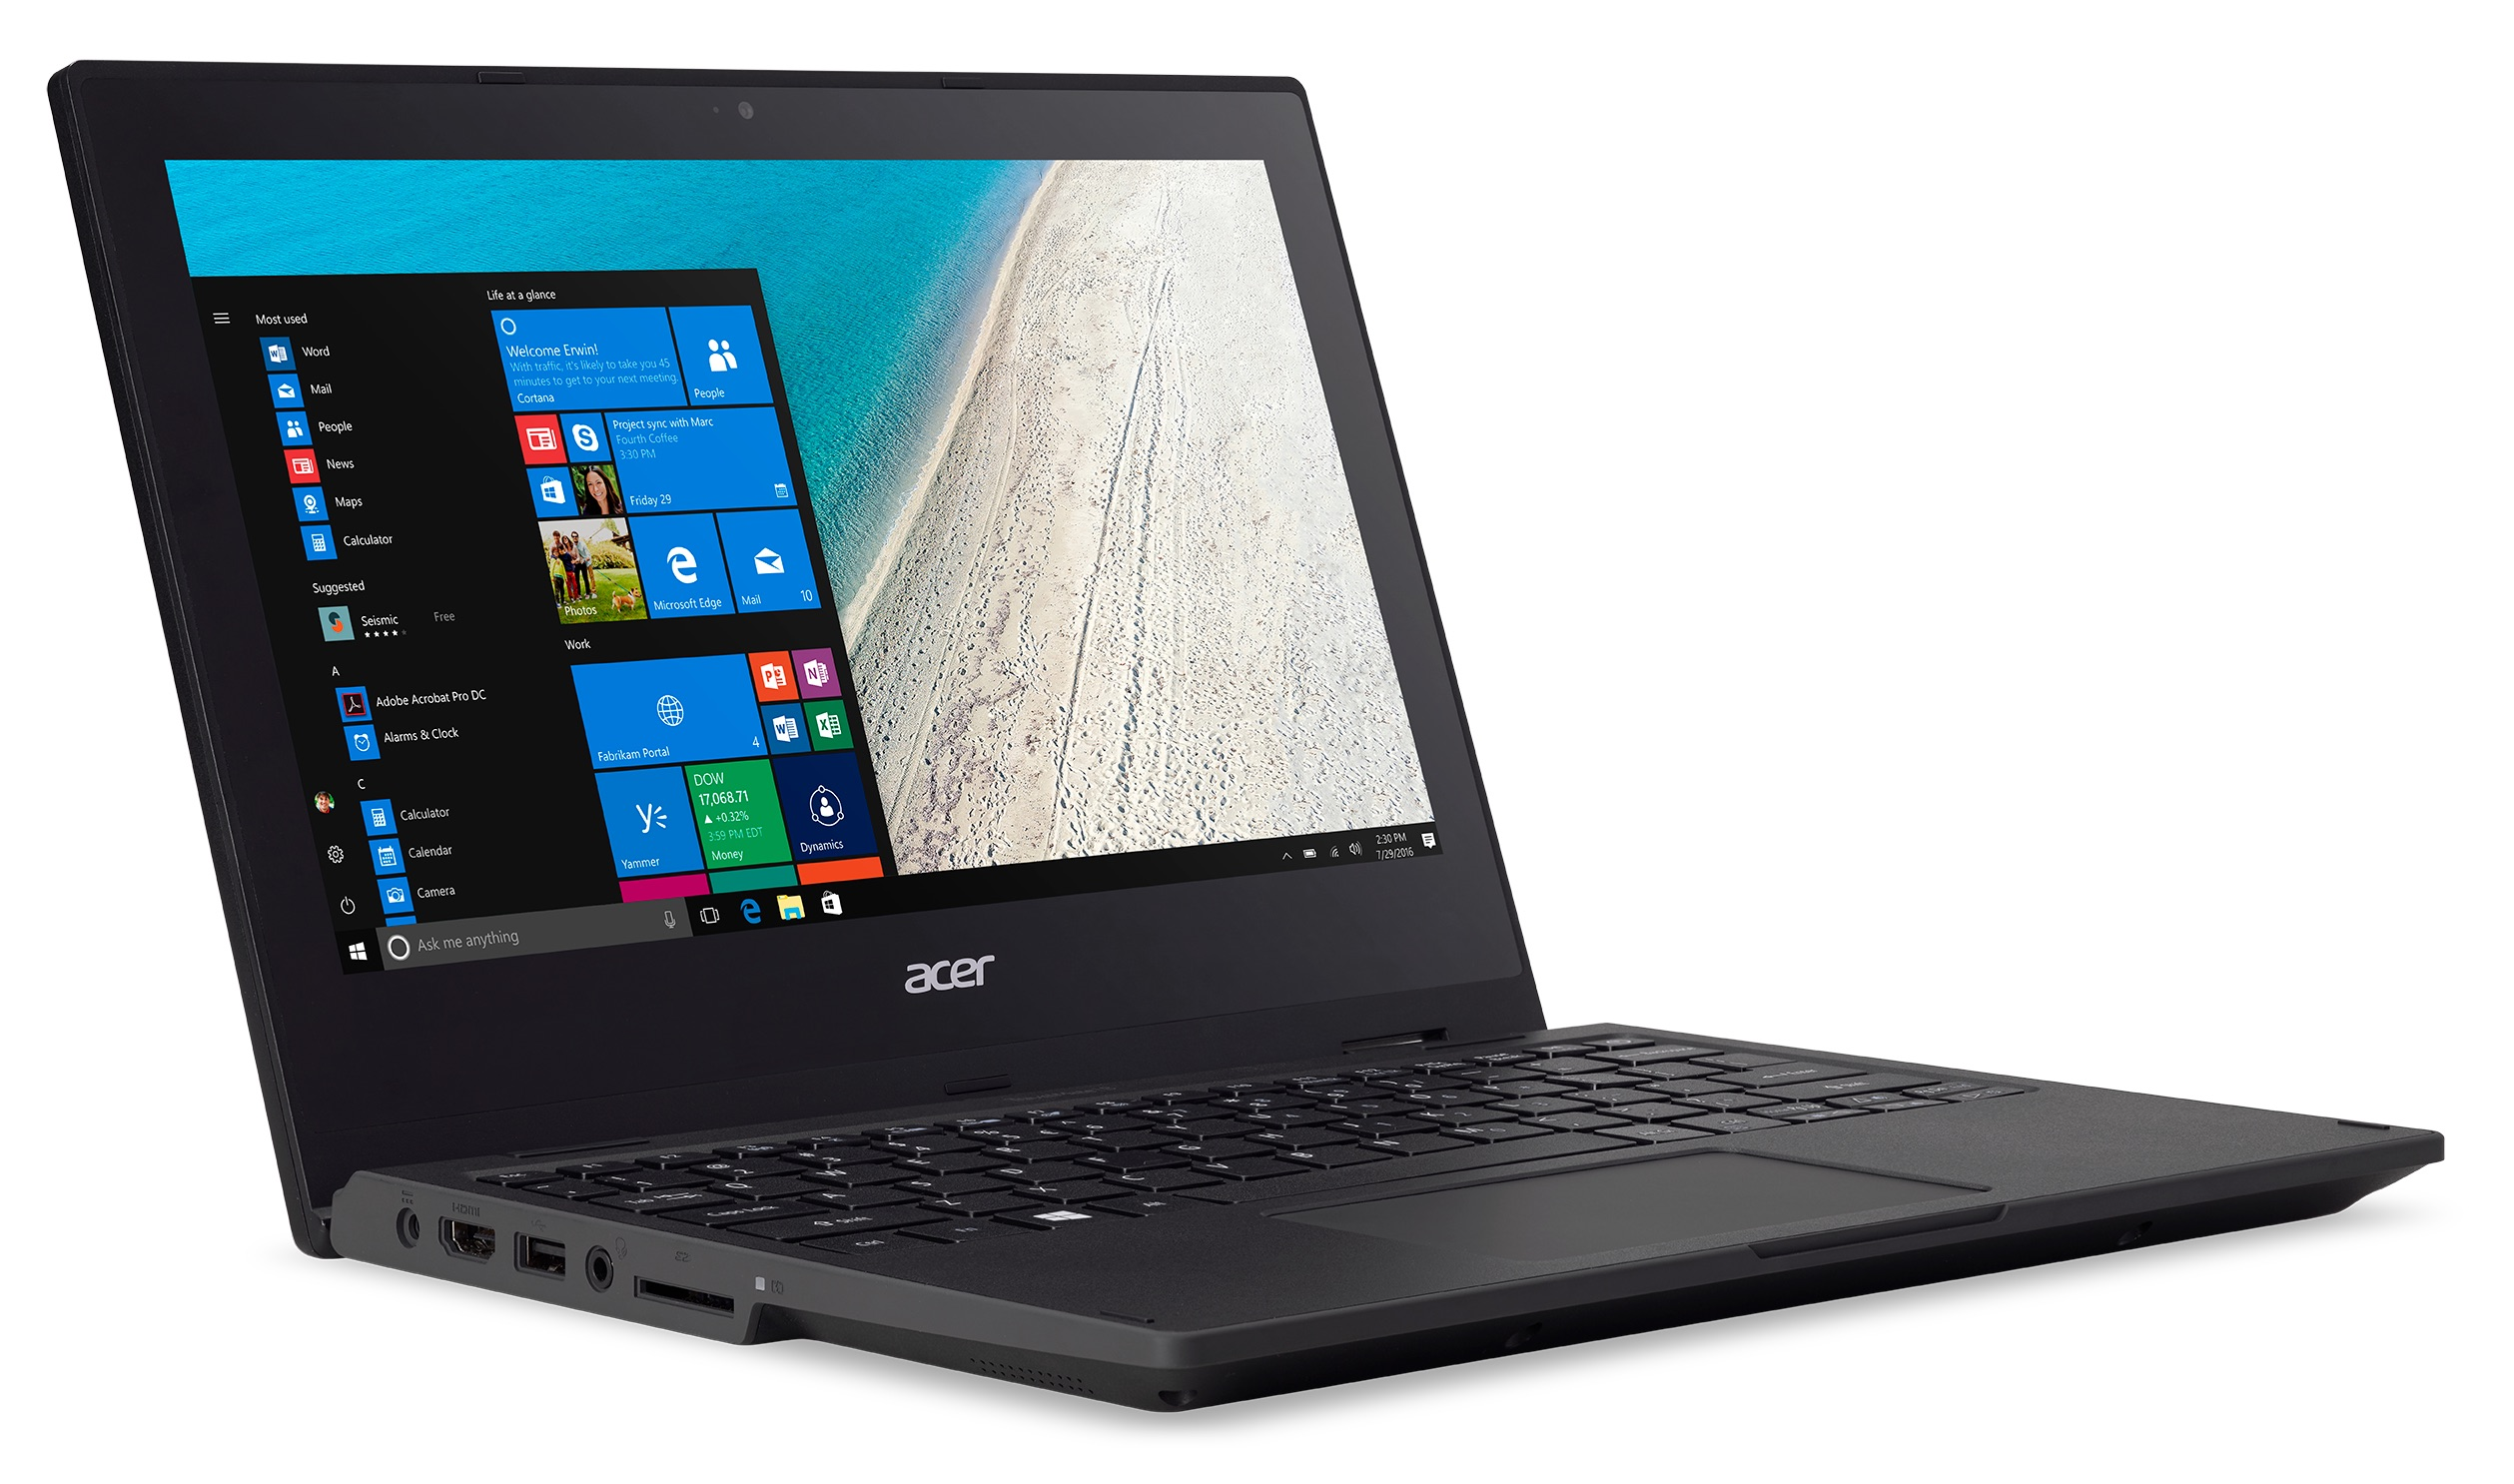 Acer TravelMate Spin B1 Convertible with Windows 10 S